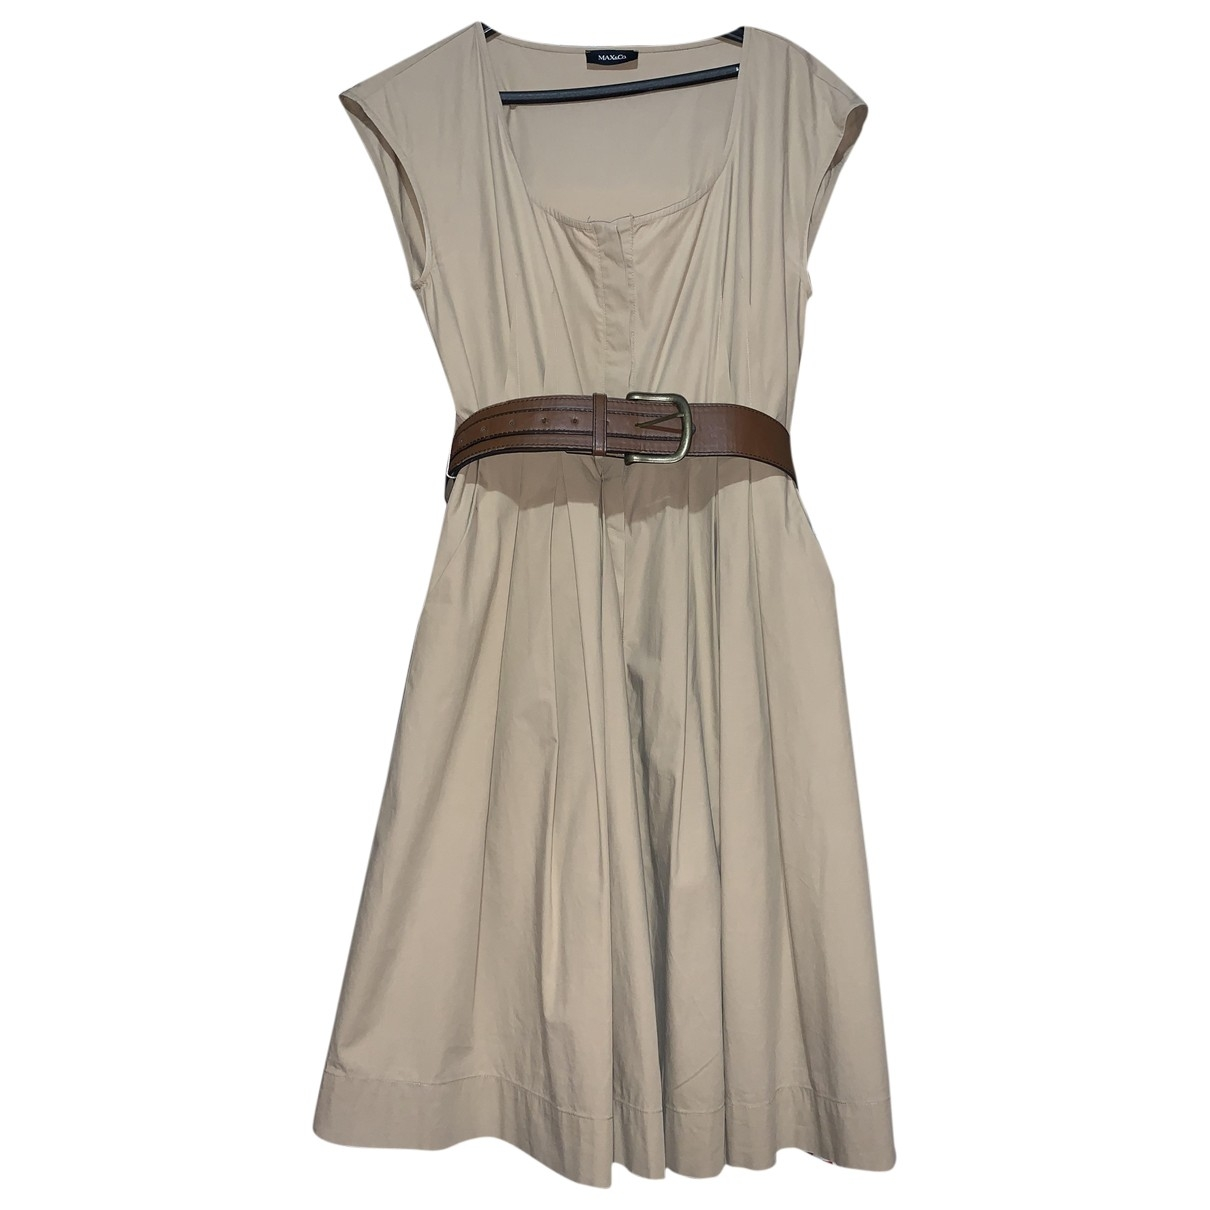 Max & Co \N Beige Cotton dress for Women 46 IT